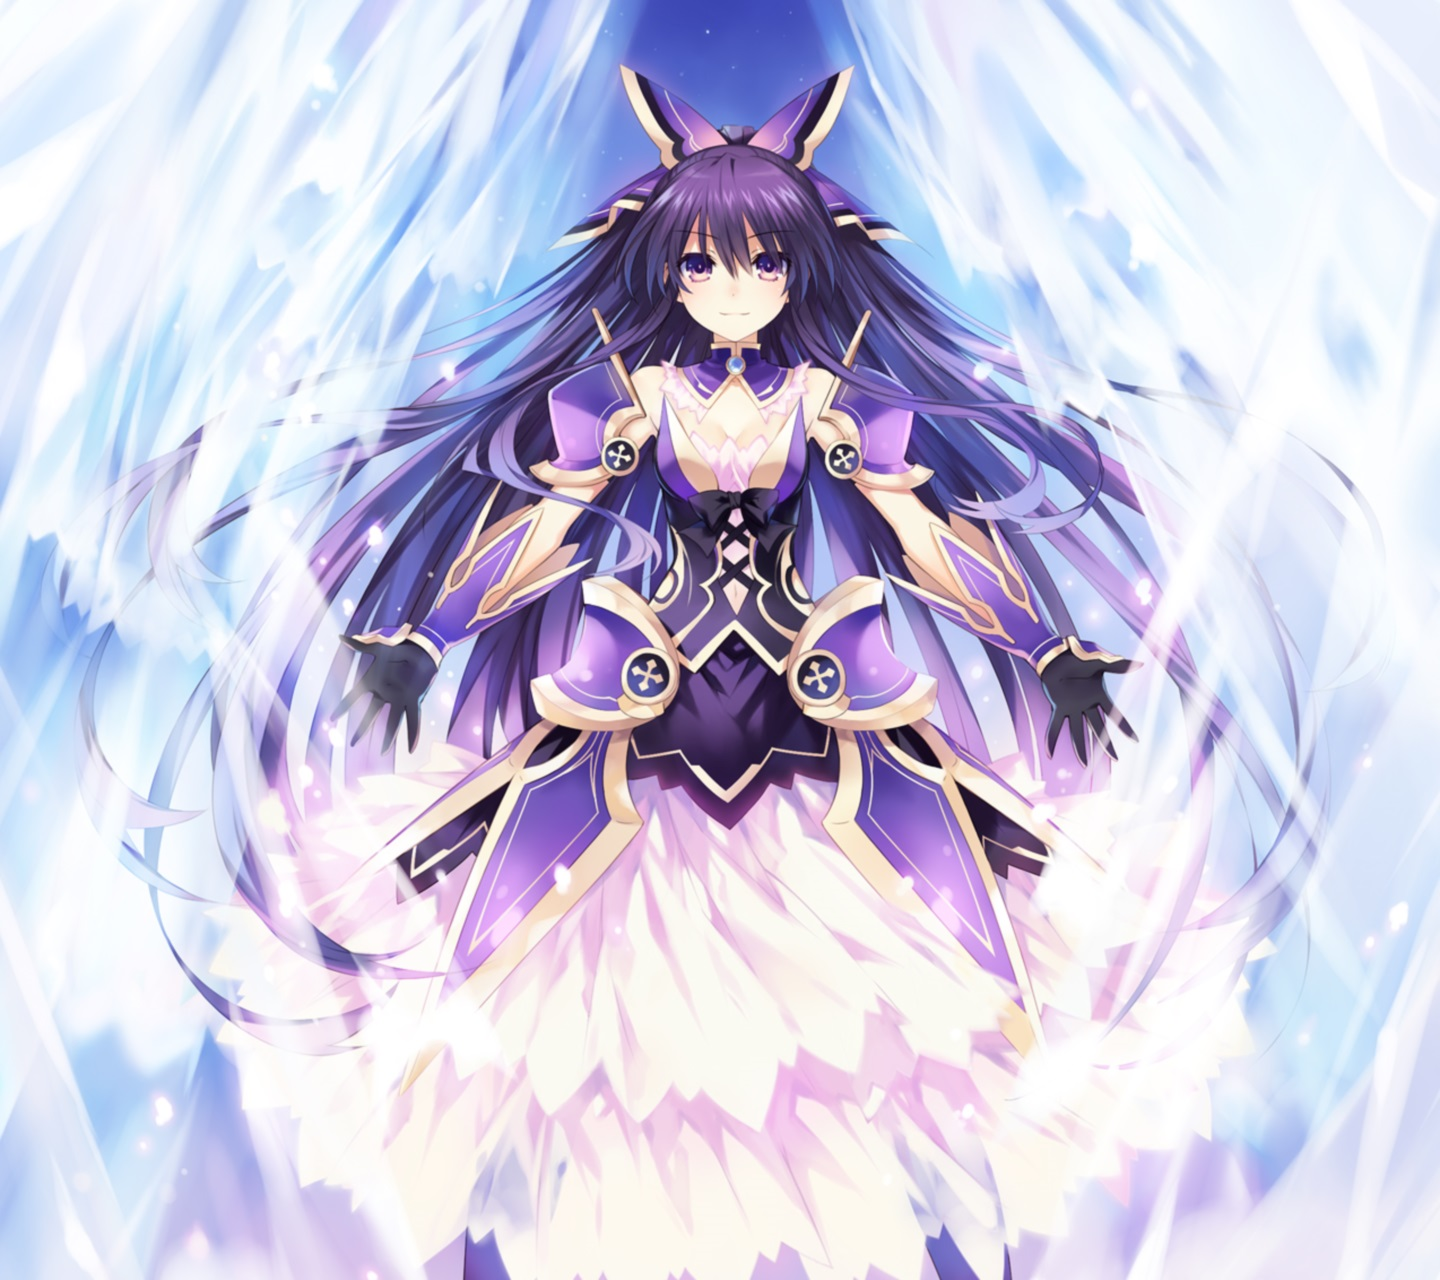 Date A Live Wallpapers For Smartphones Iphone Android 720x1280